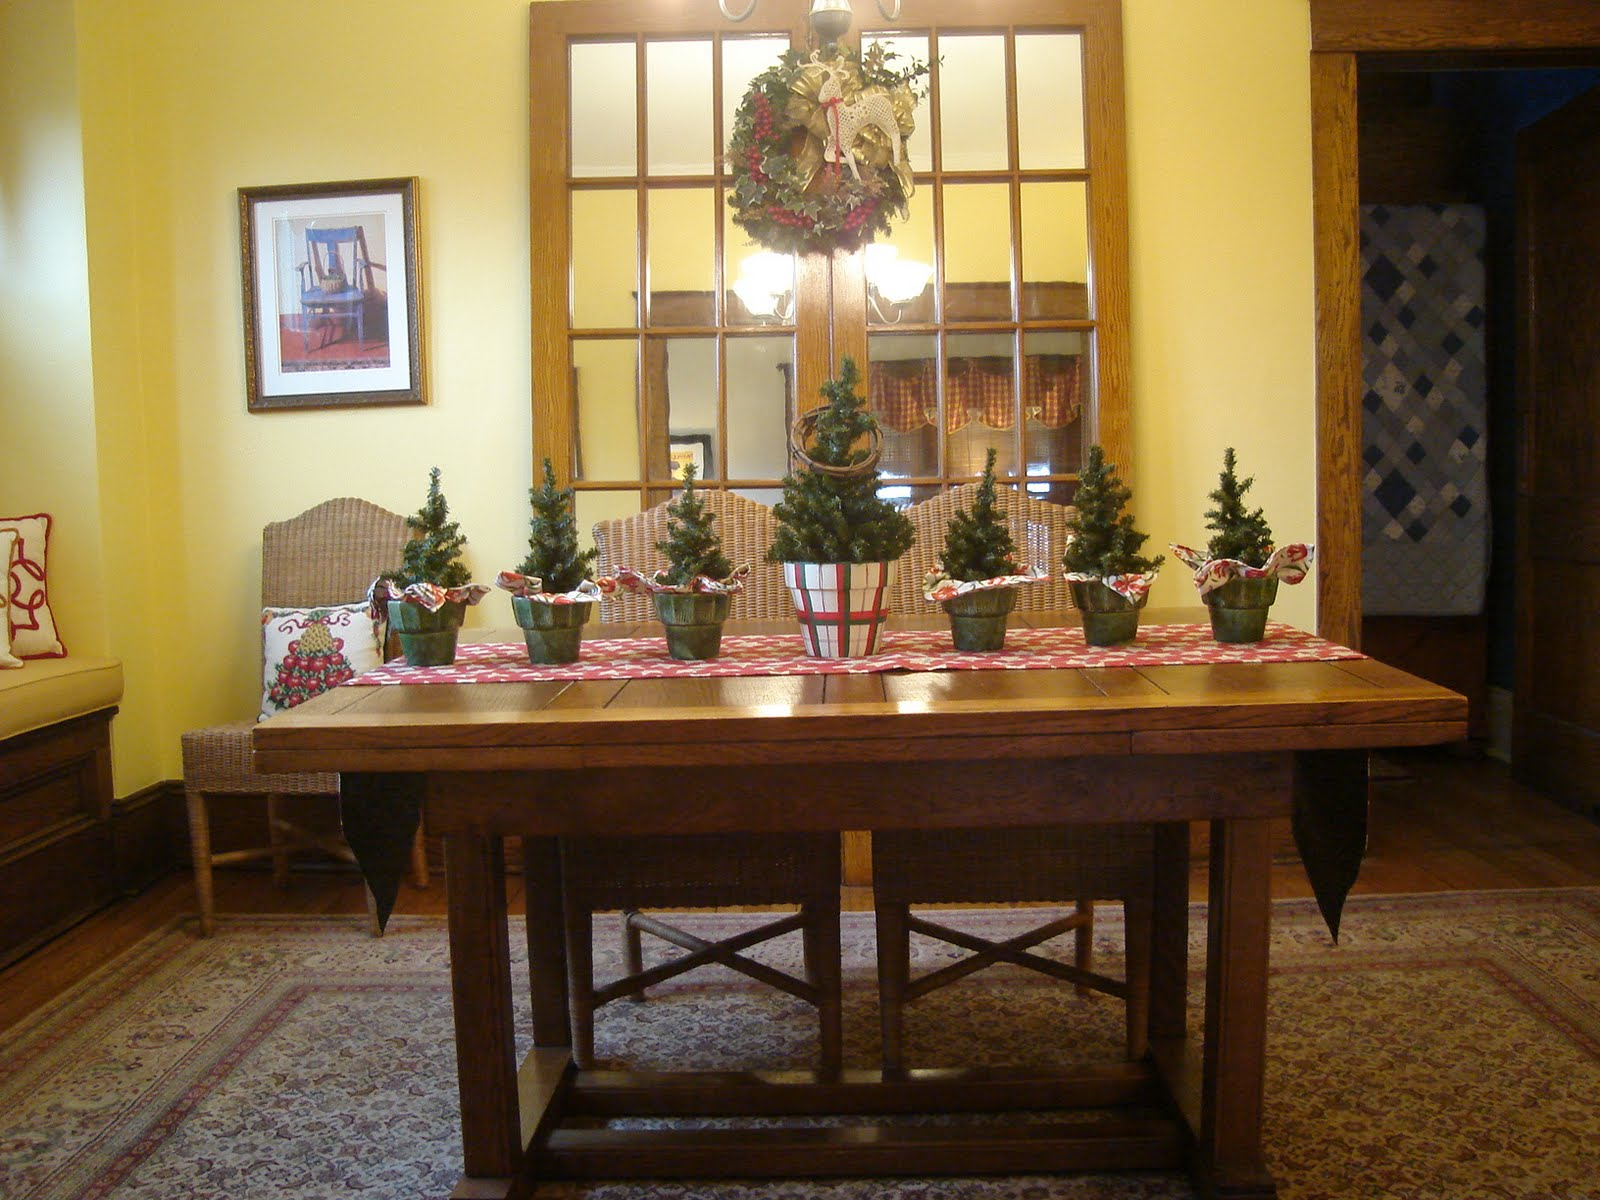 Days at buttermilk cottage dressing the dining room table for Dining table dressing